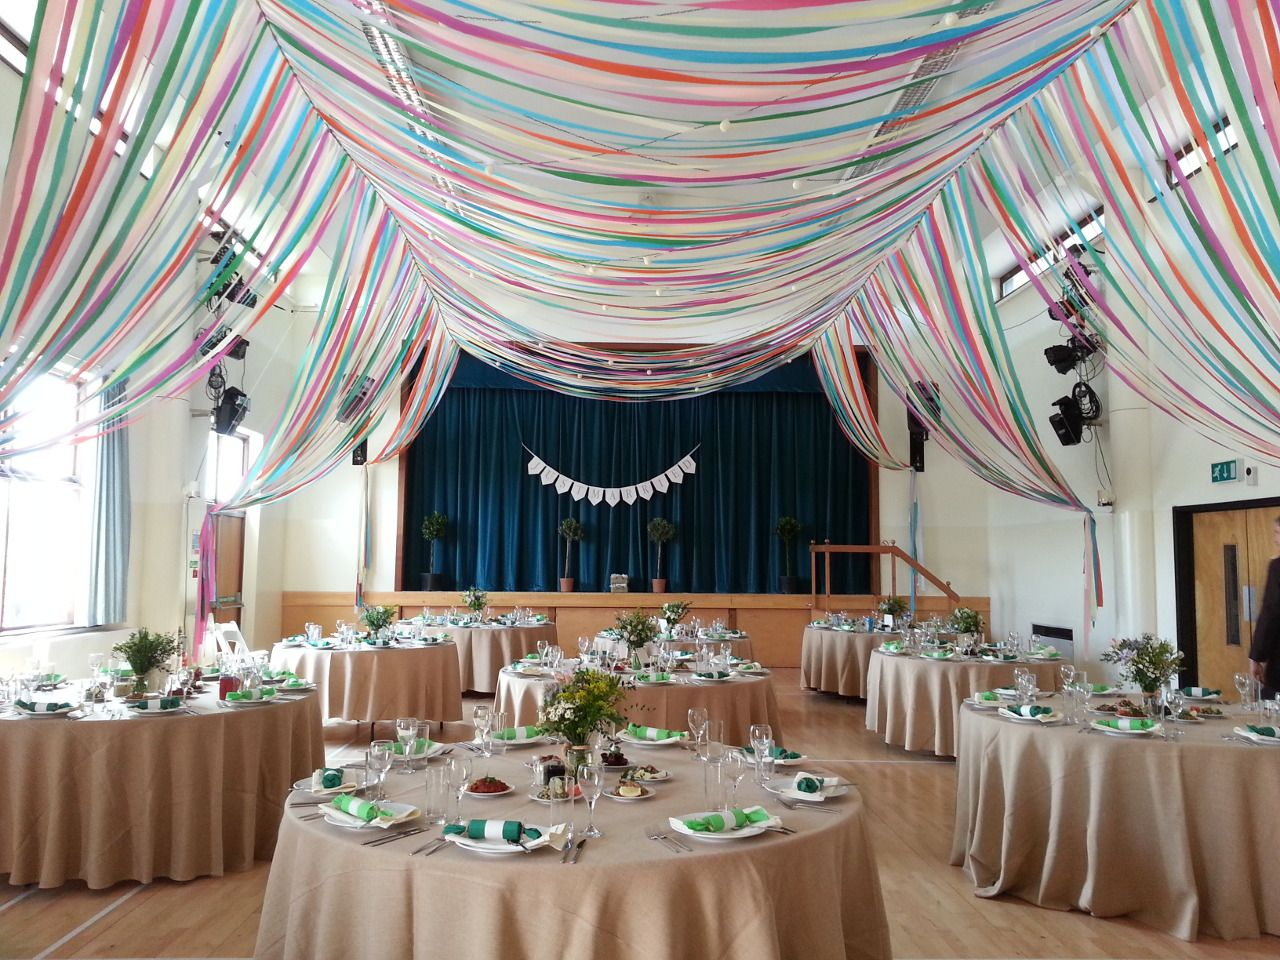 Colourful-ribbon-canopy-wedding-reception-town-village